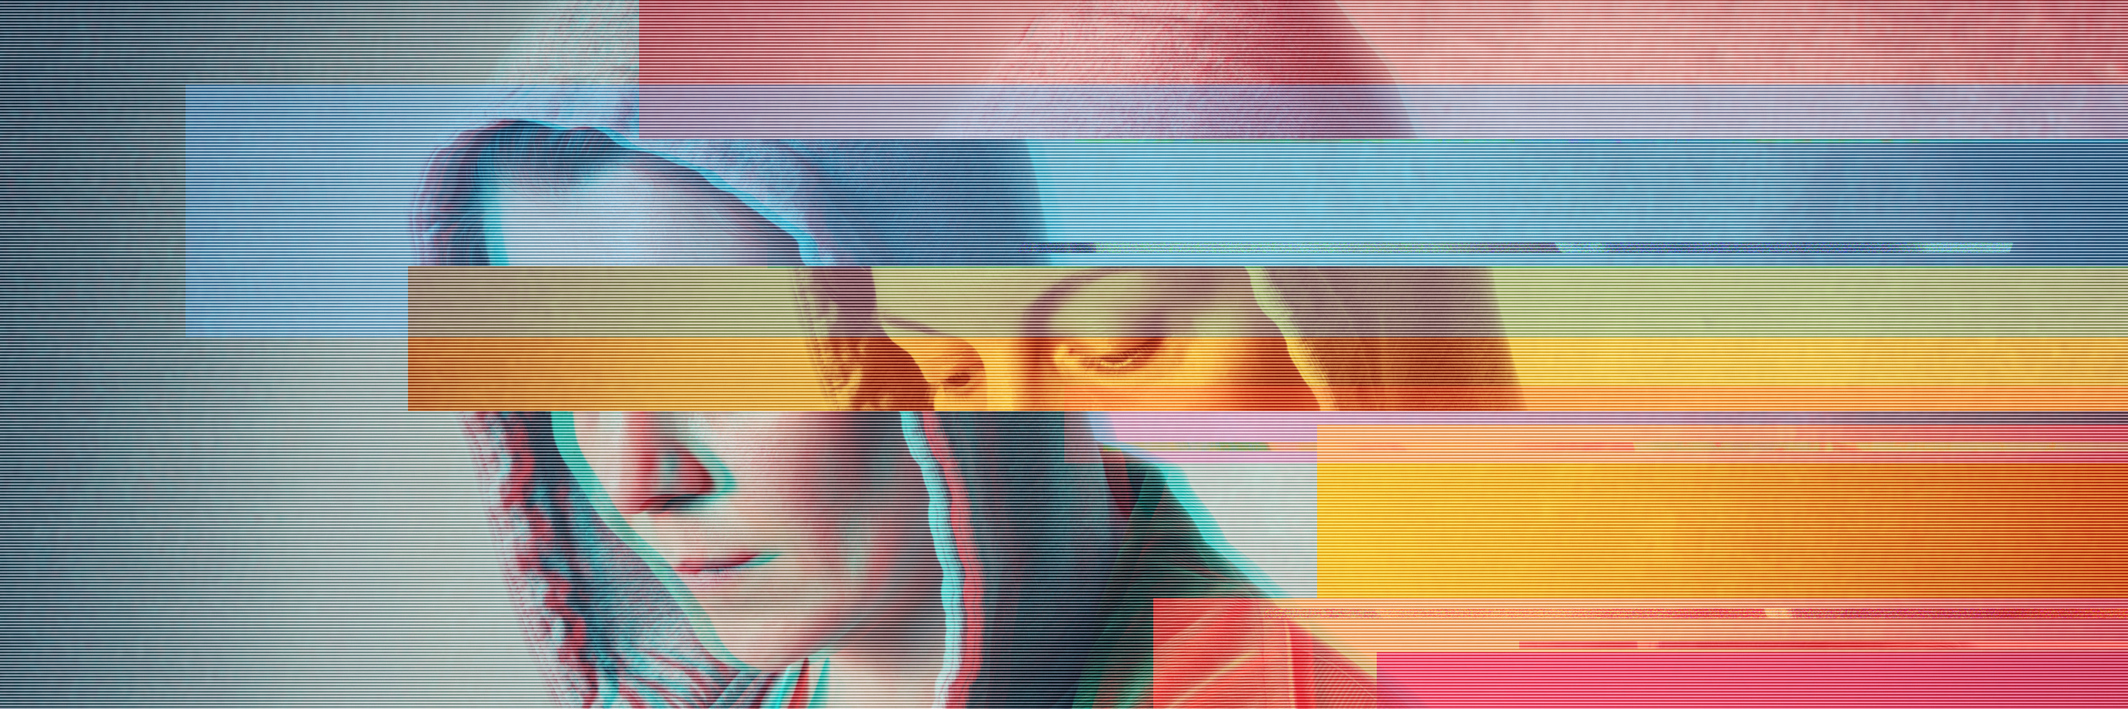 Glitched-style photo, covering a woman.